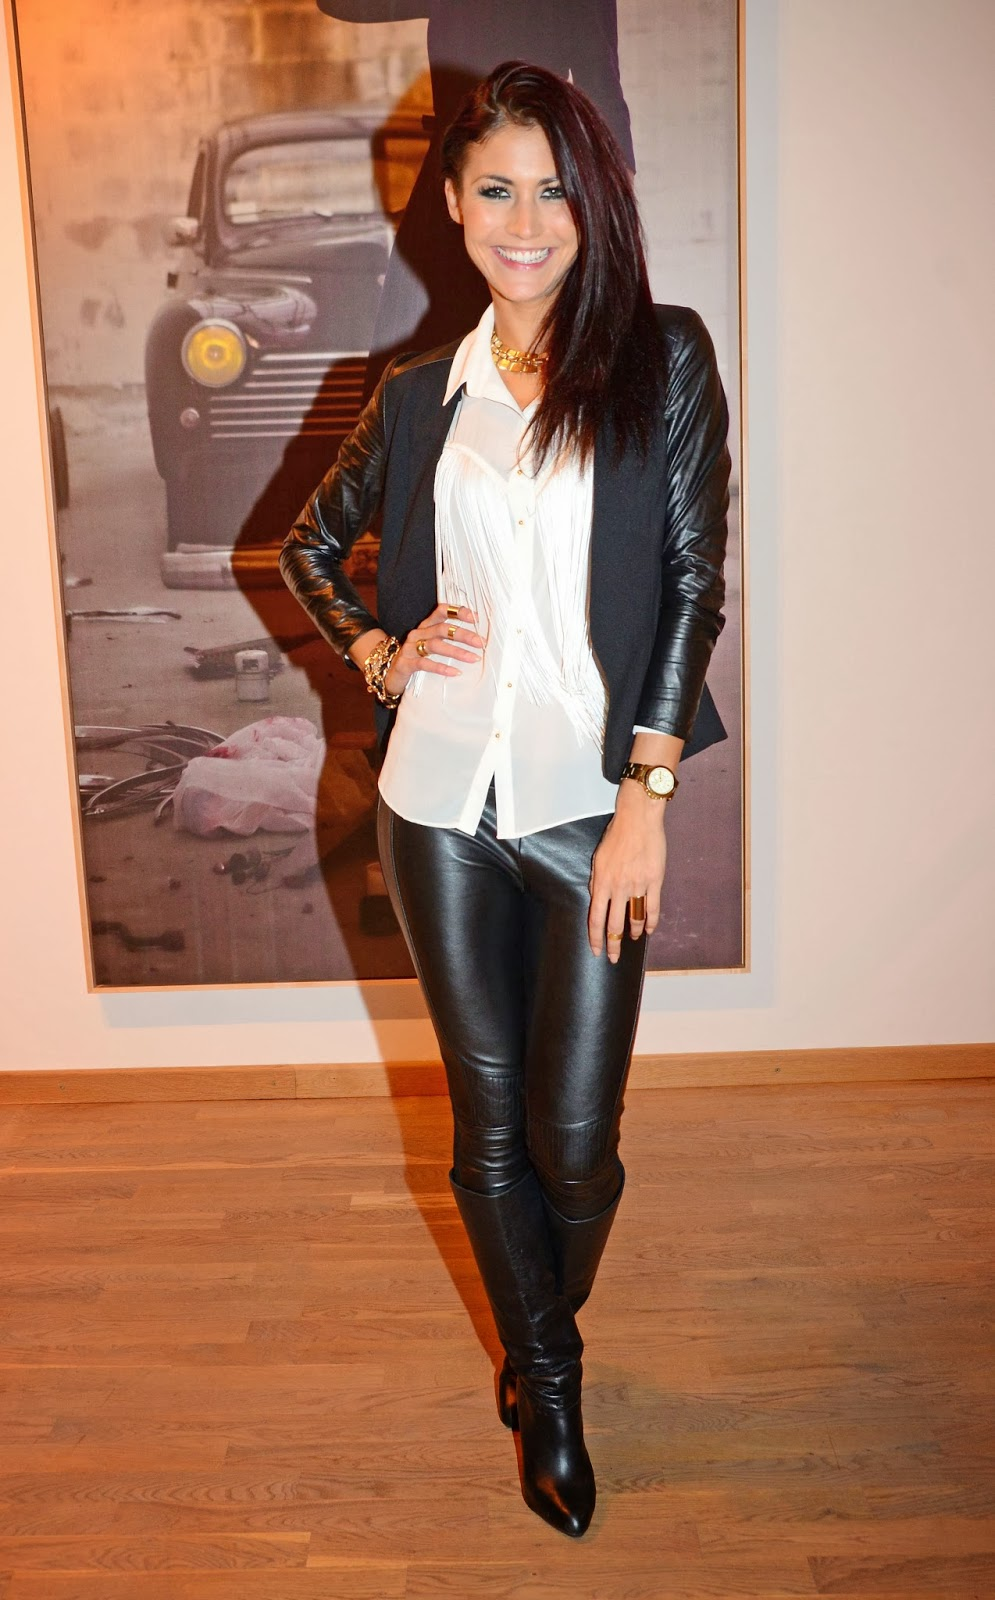 Popular Women In Tight Jeans And Boots Girls  Leather Pants And Jacket